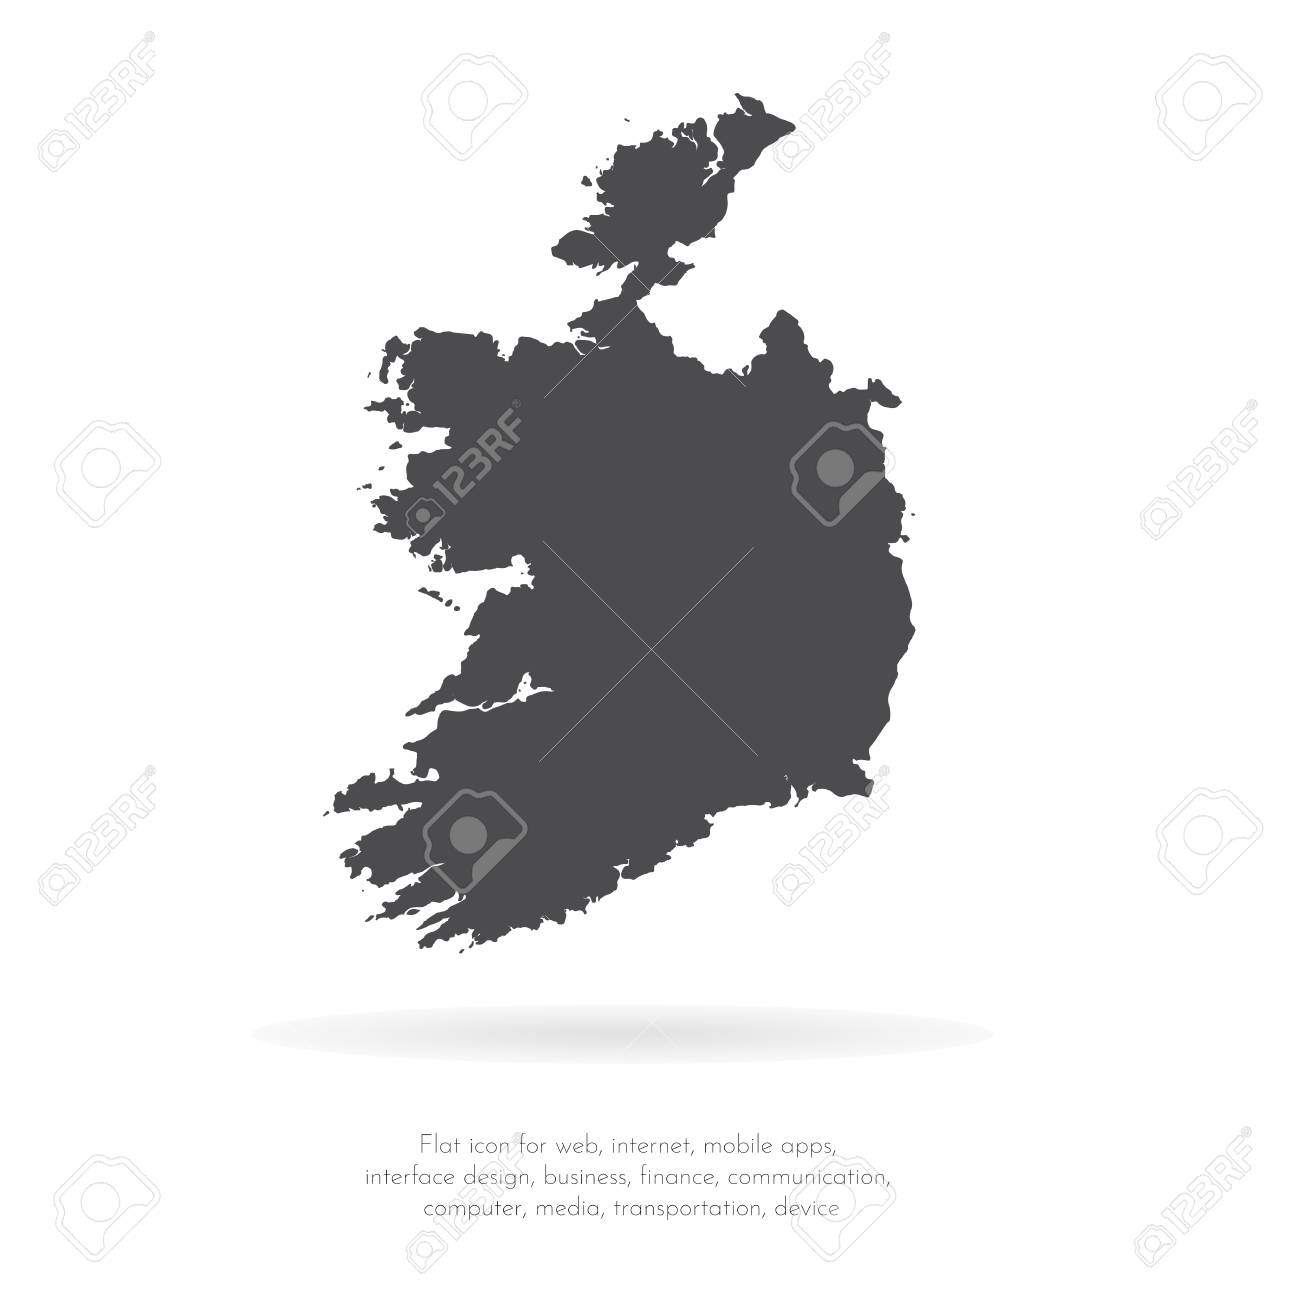 Map Of Ireland Black And White.Vector Map Ireland Isolated Vector Illustration Black On White